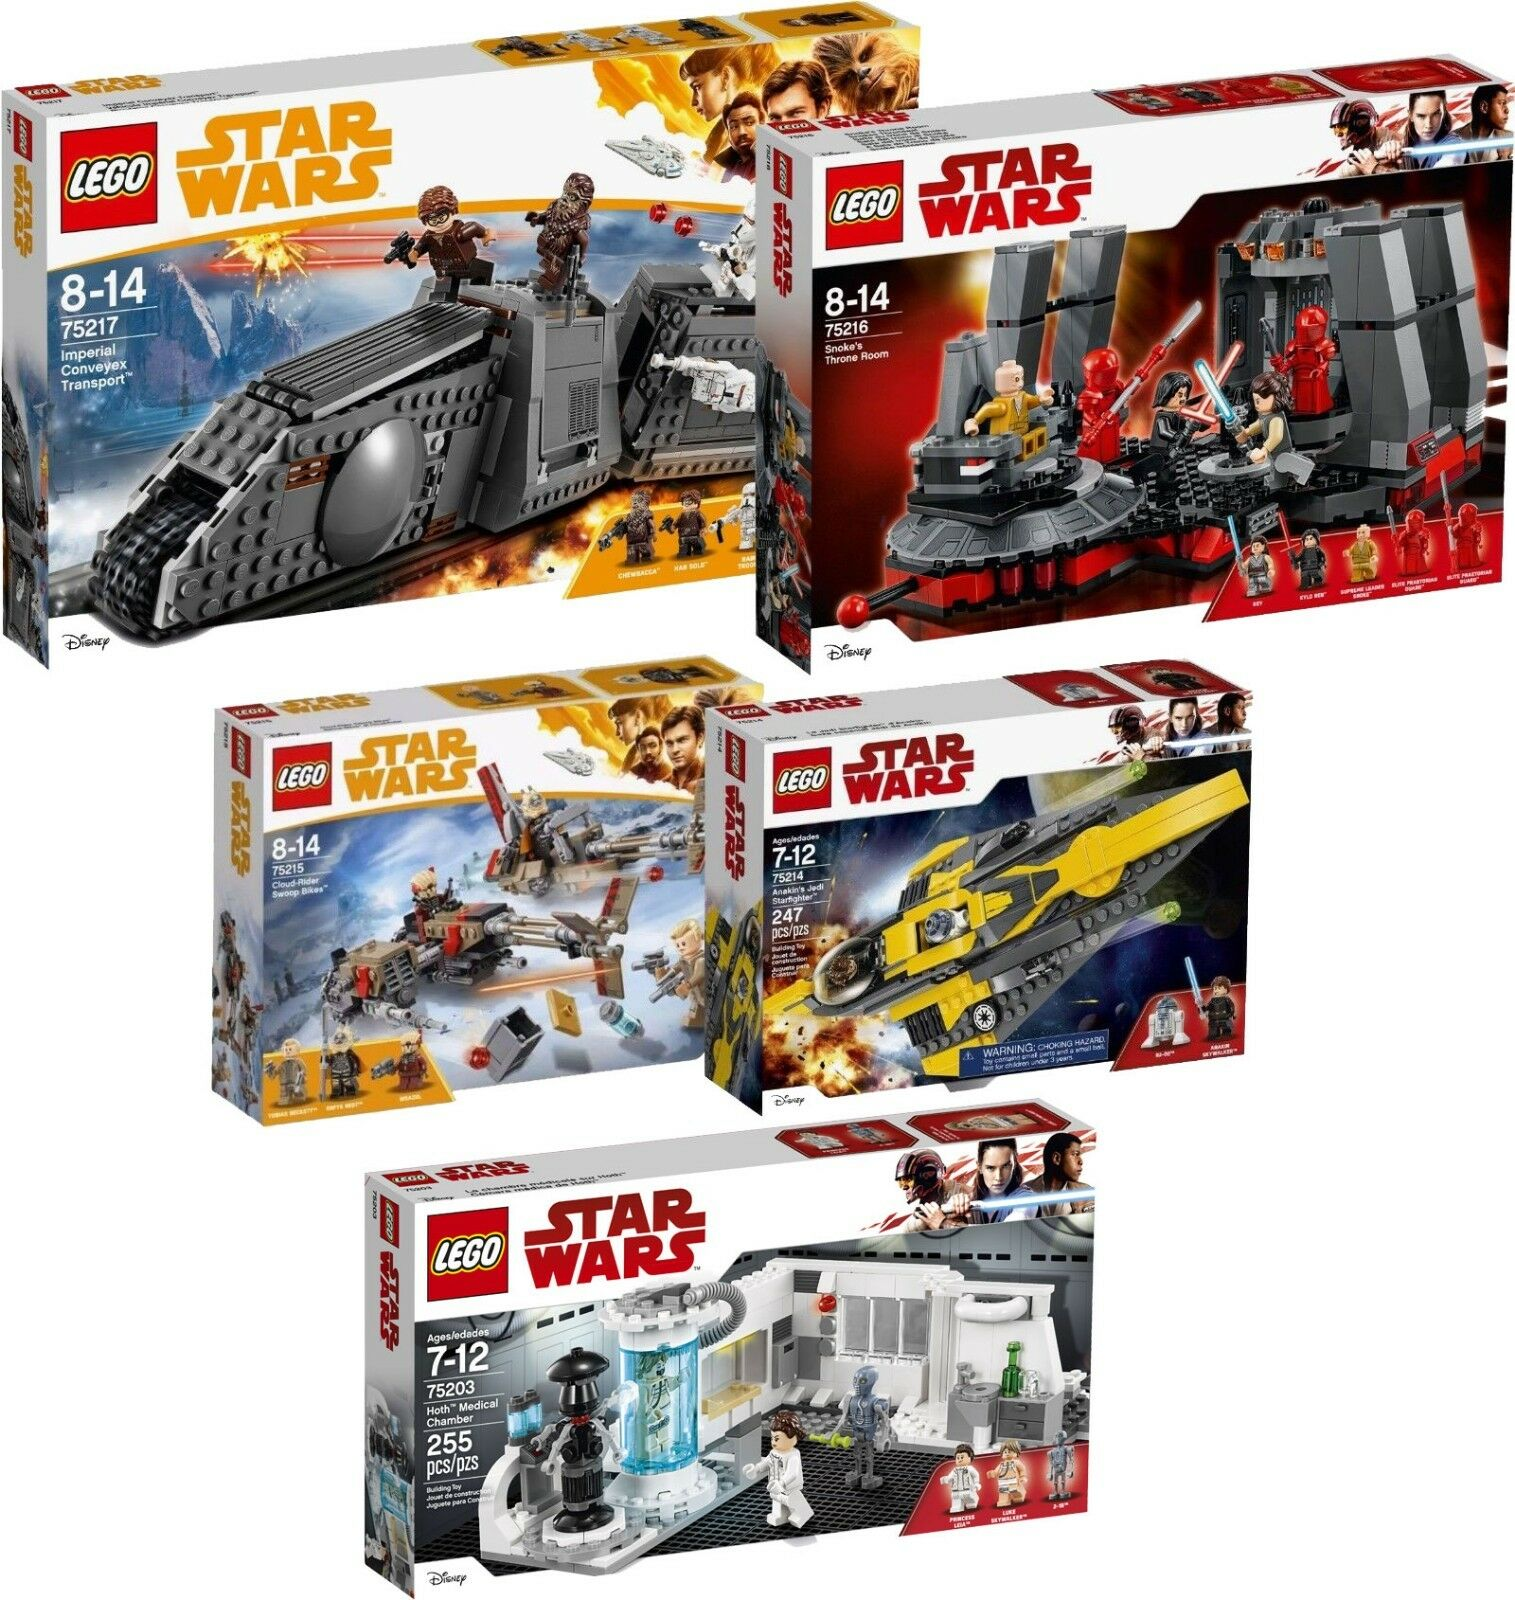 LEGO Star Wars 75217 75216 75215 75214 75203 Imperial conveyex n8/18